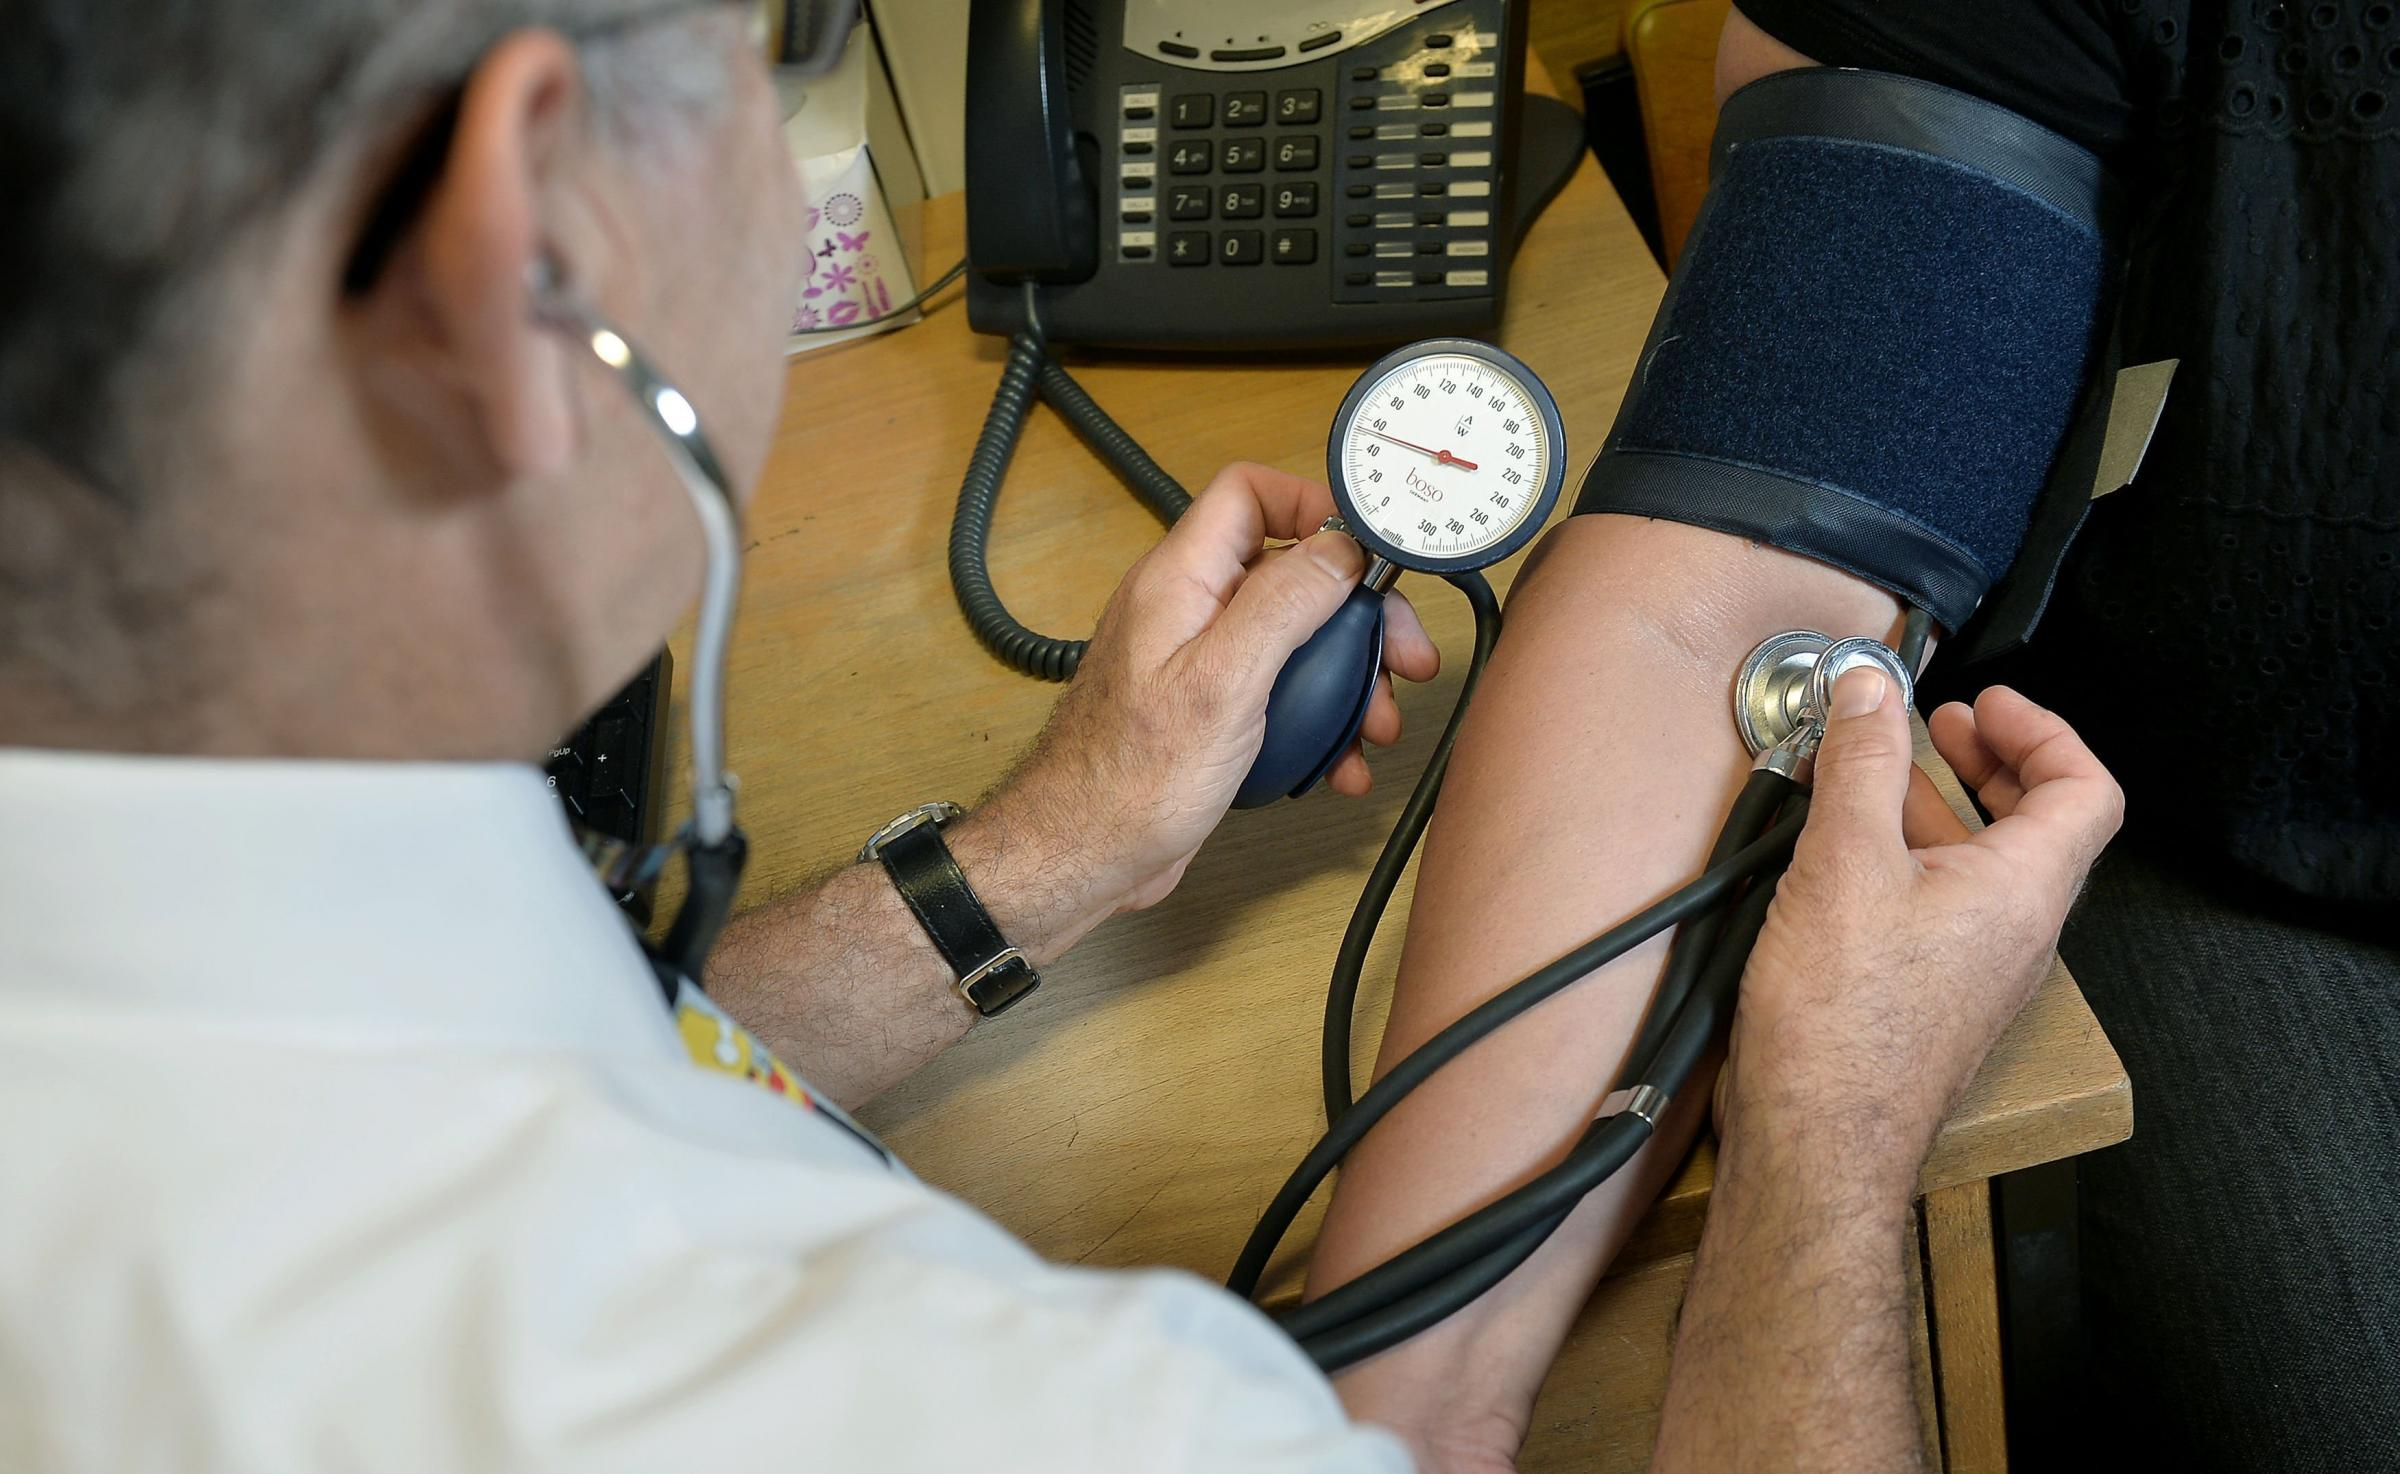 GP and dentist complaints fall in Northwich and Winsford